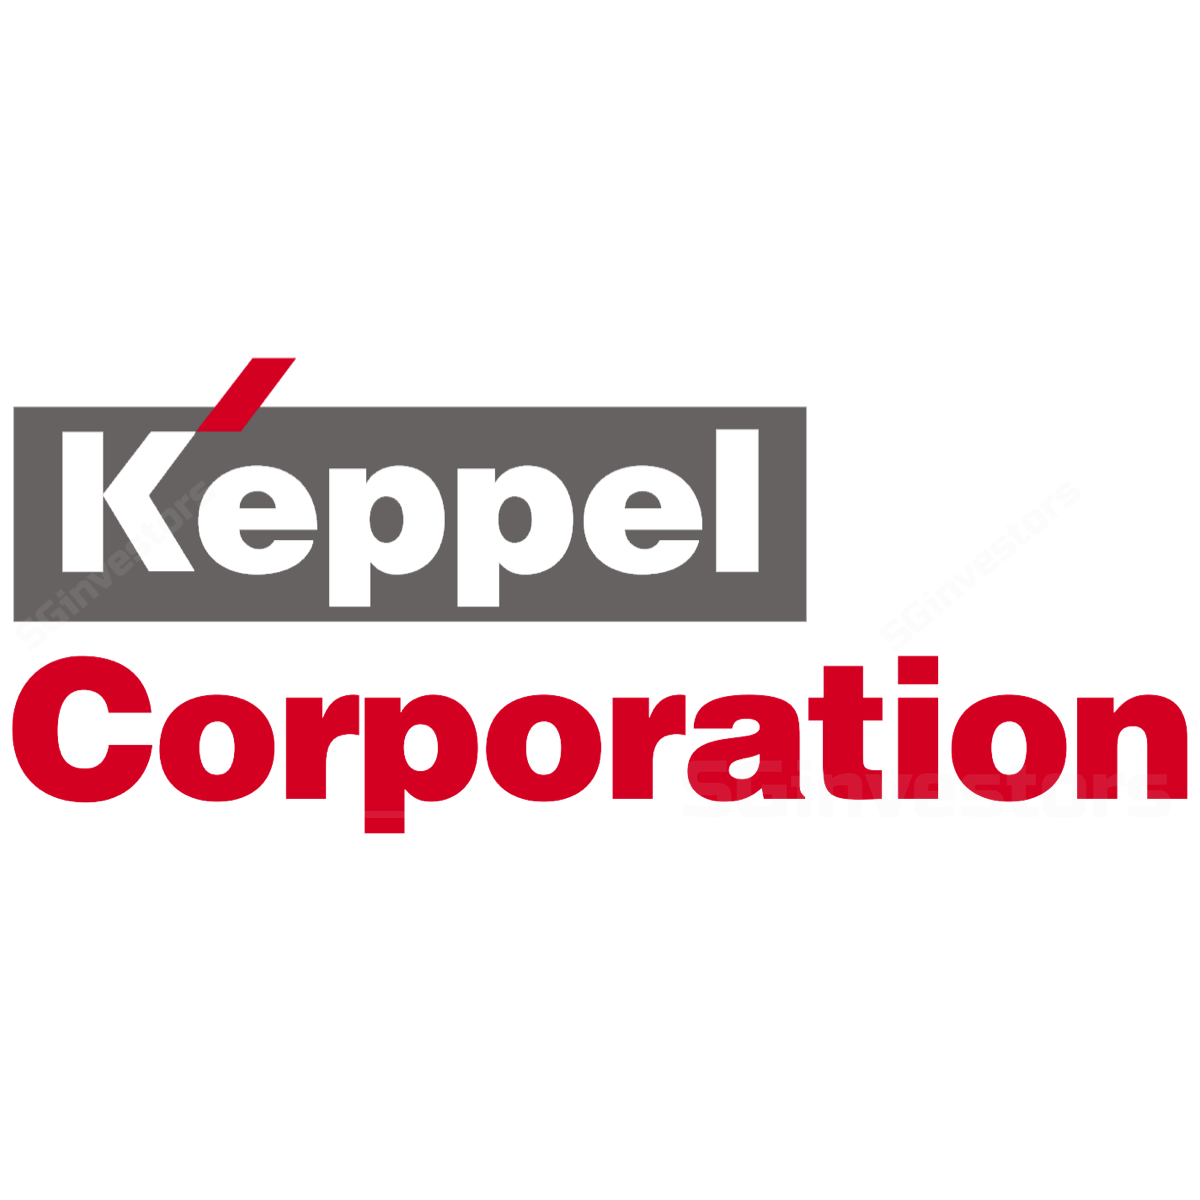 Keppel Corporation - OCBC Investment 2017-09-13: Well-placed To Benefit